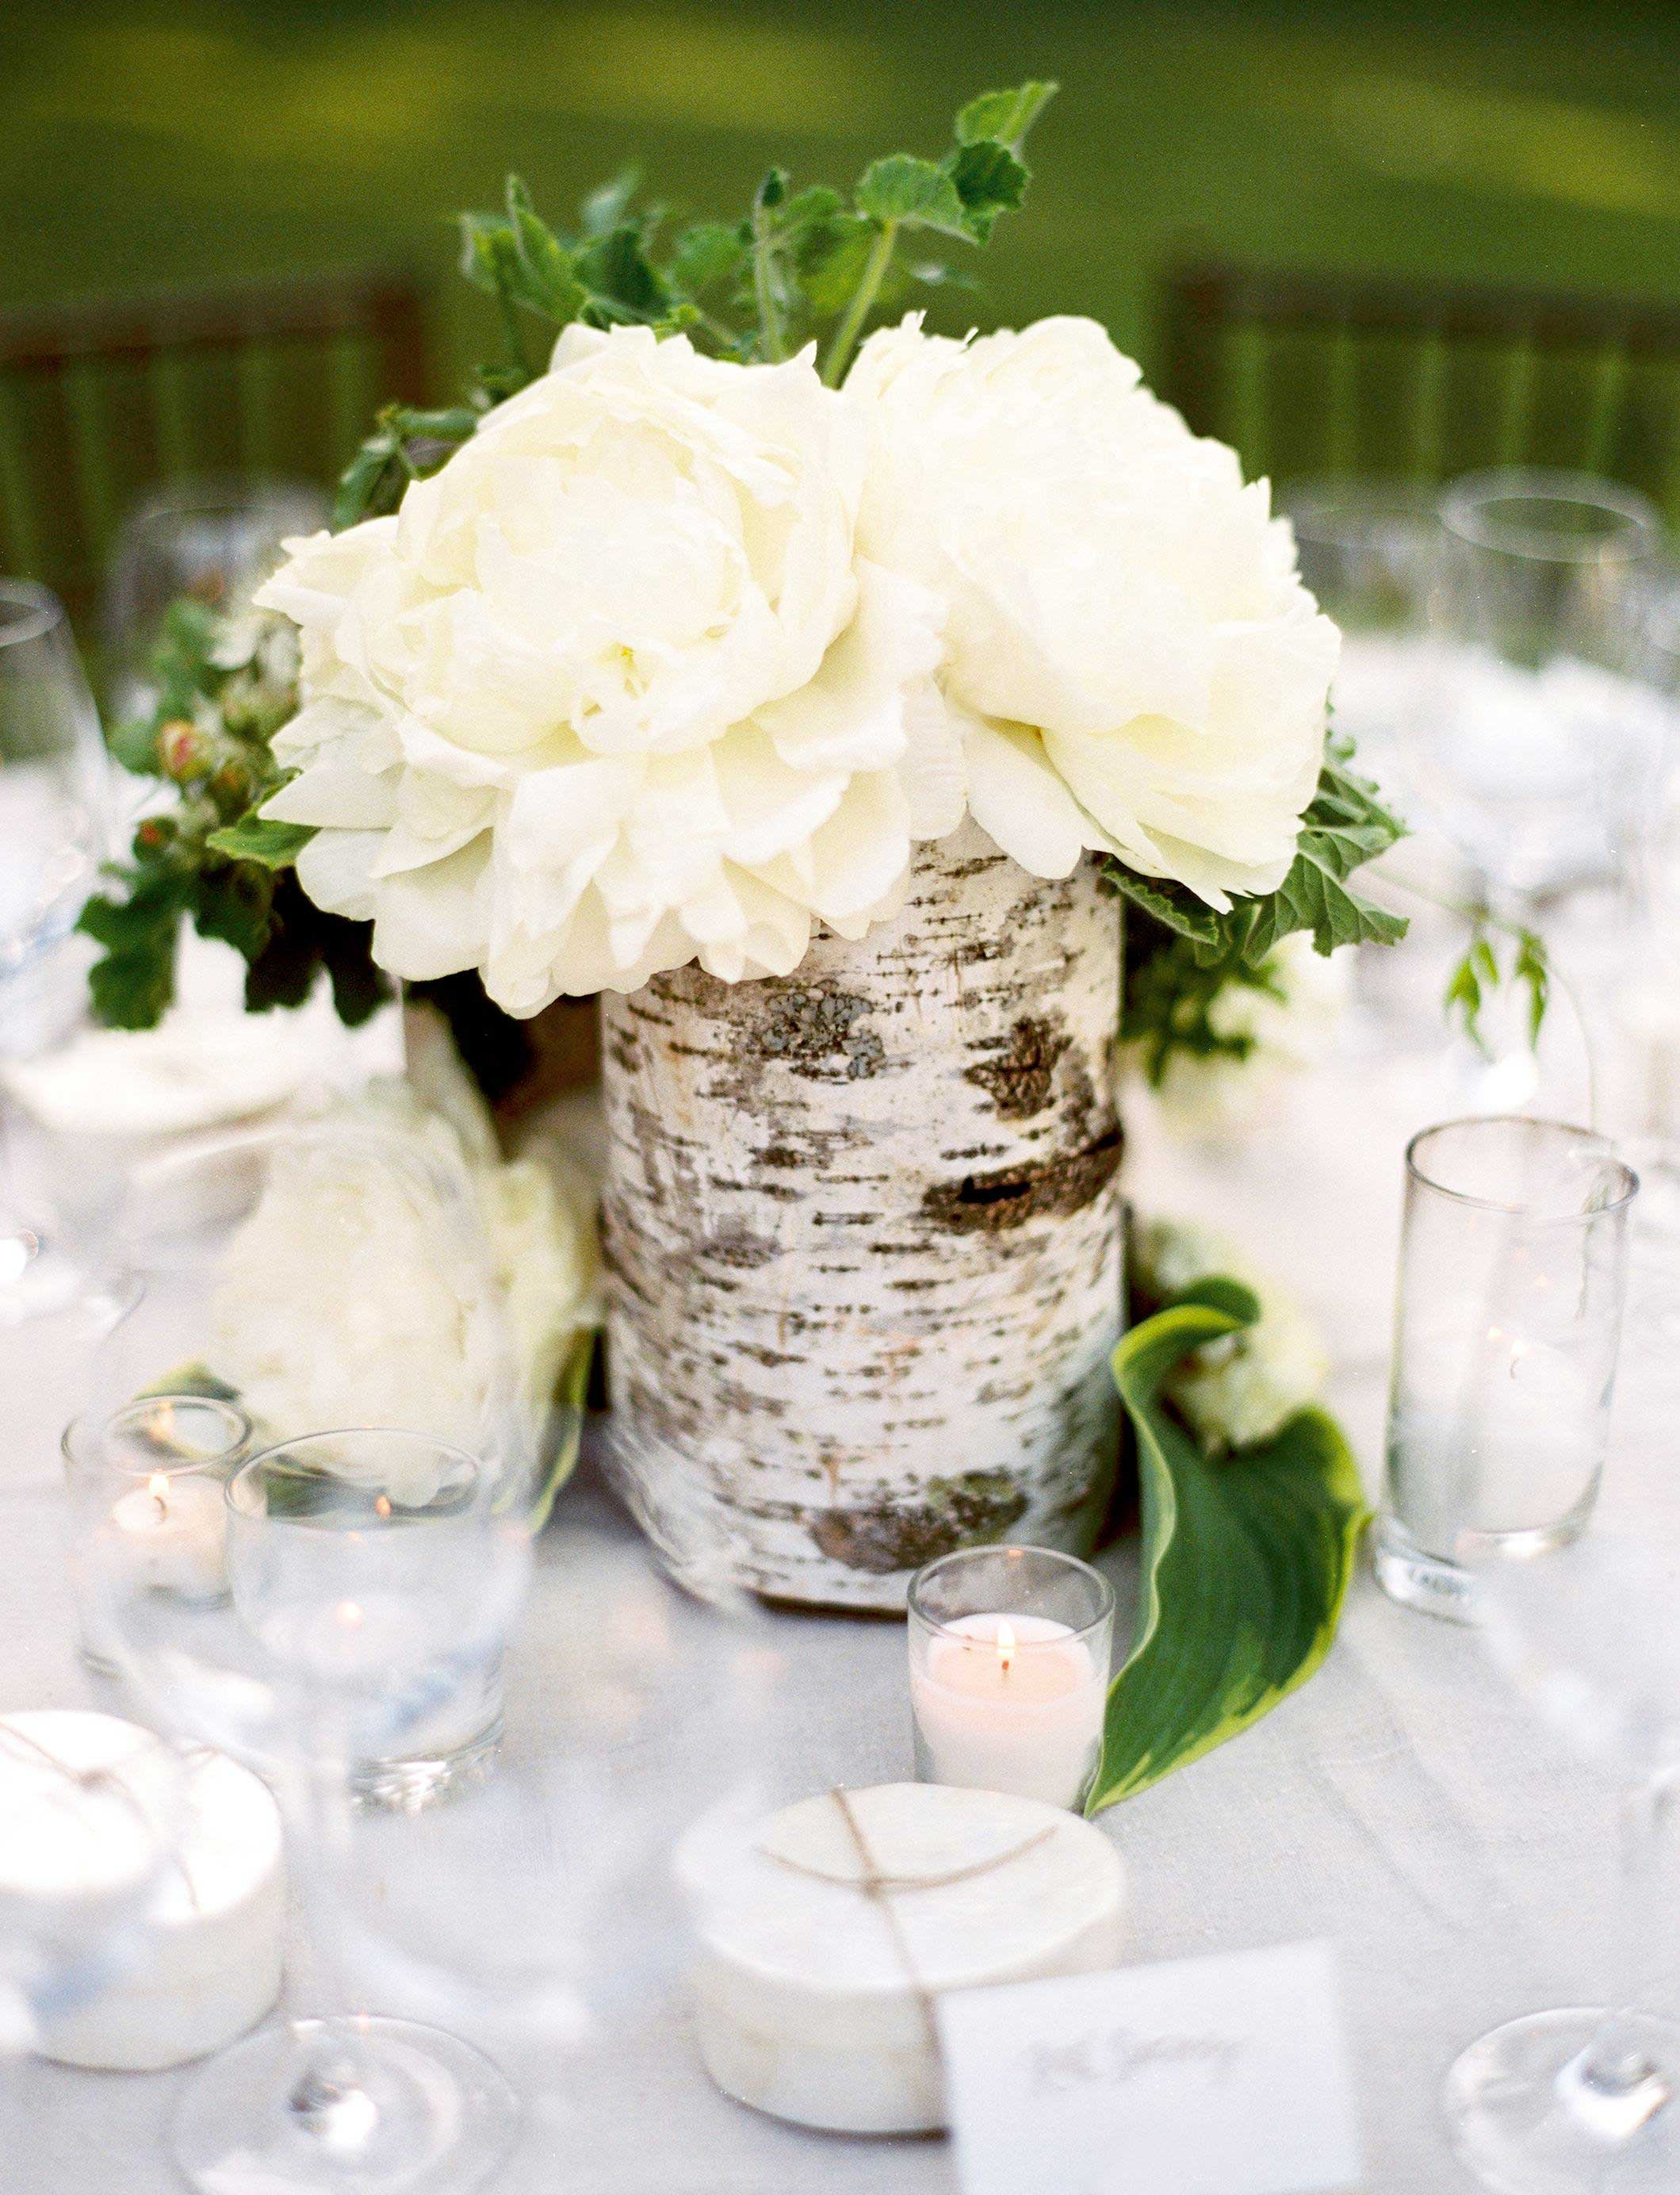 Birch tree bark wrapped around low centerpiece